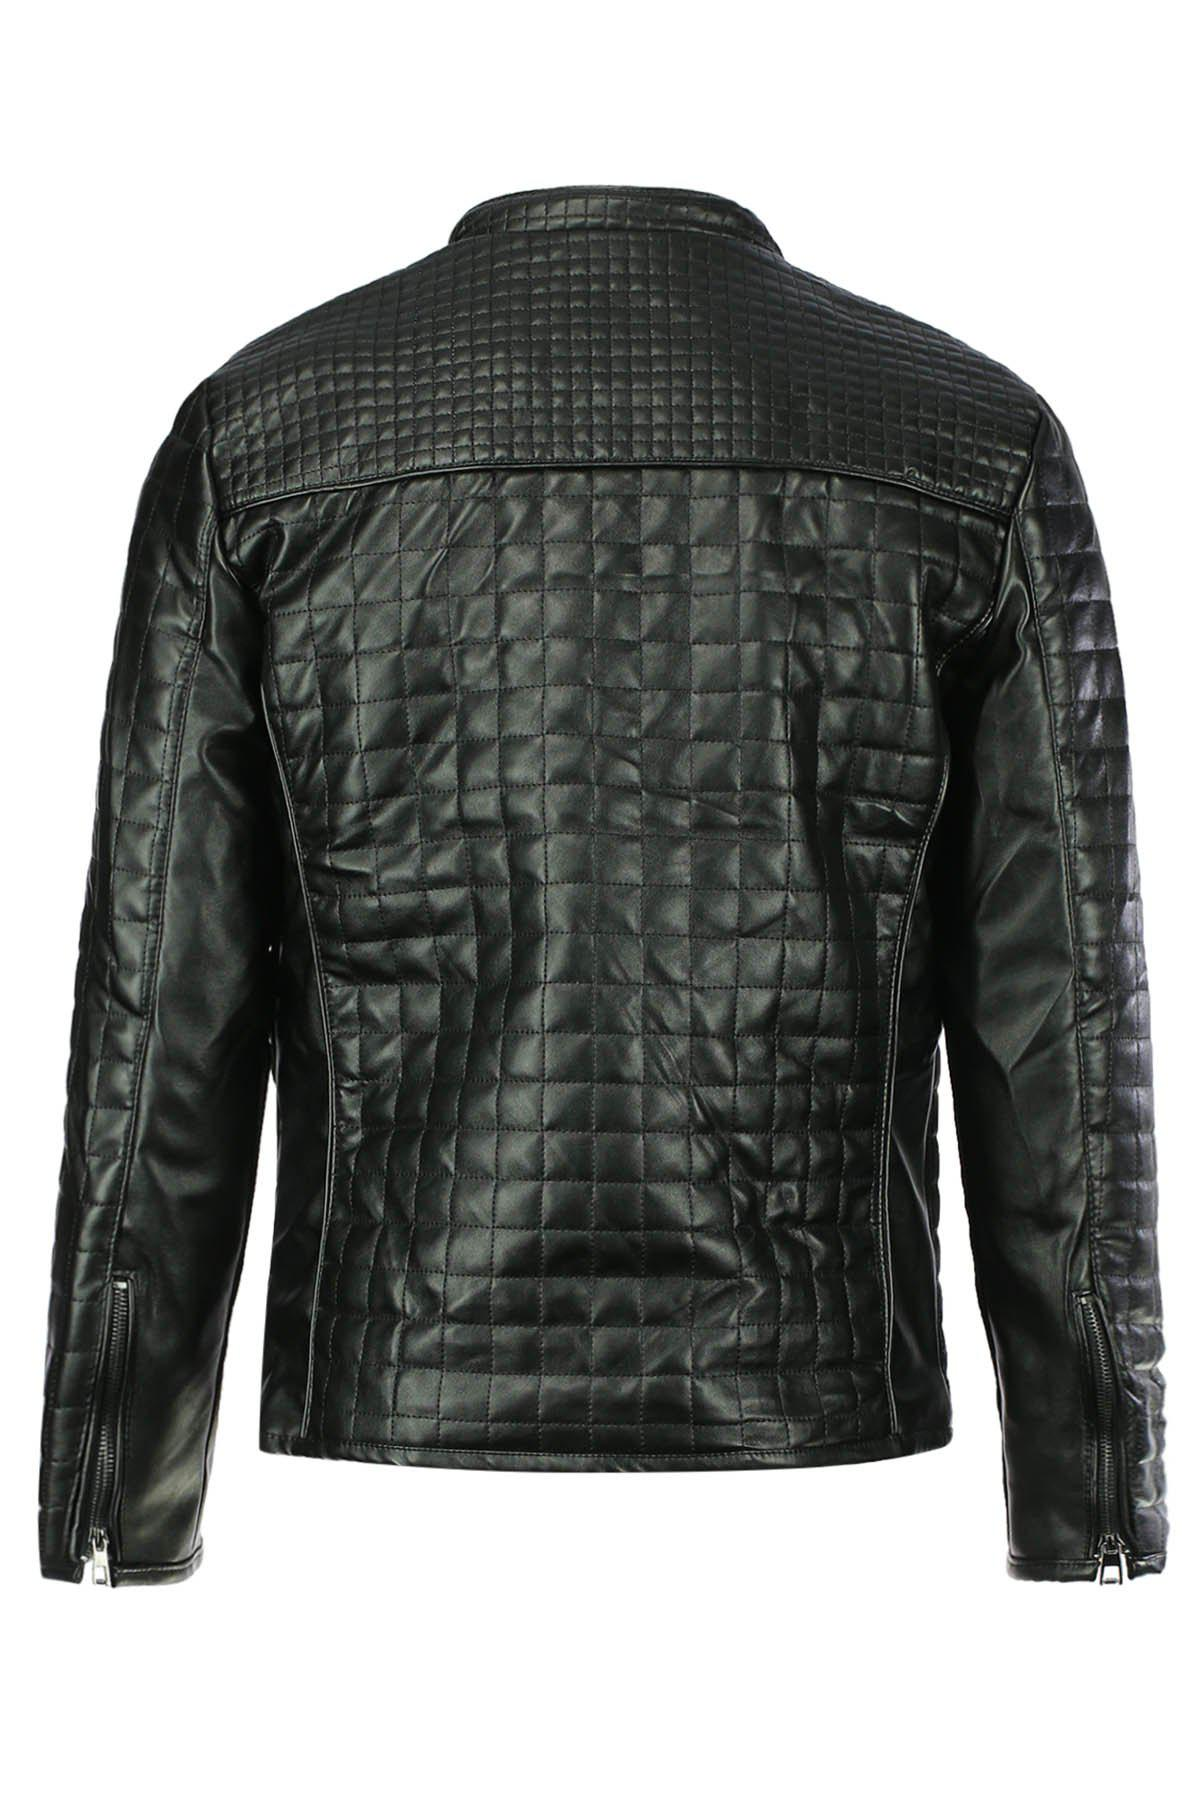 Checked Stand Collar Long Sleeve PU-Leather Slimming Men's Jacket - BLACK XL